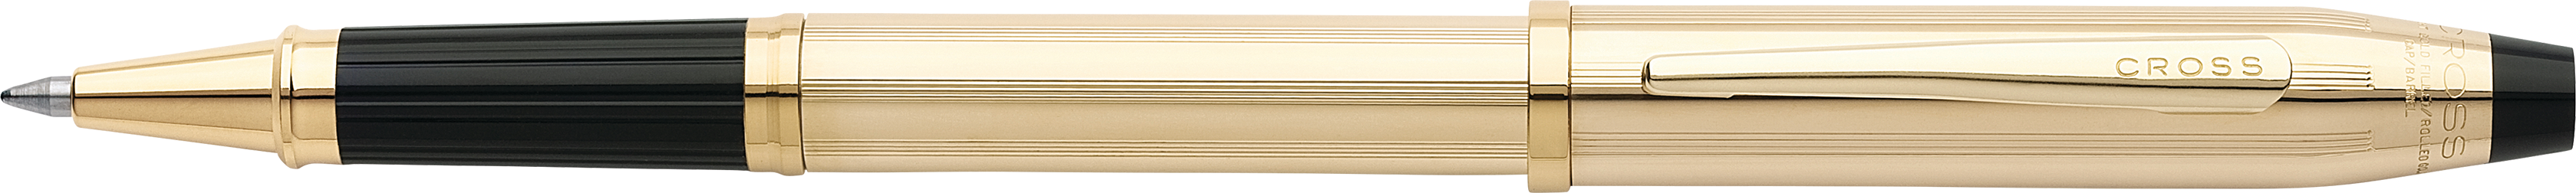 Century II 10KT Gold Filled/Rolled Gold Rollerball Pen